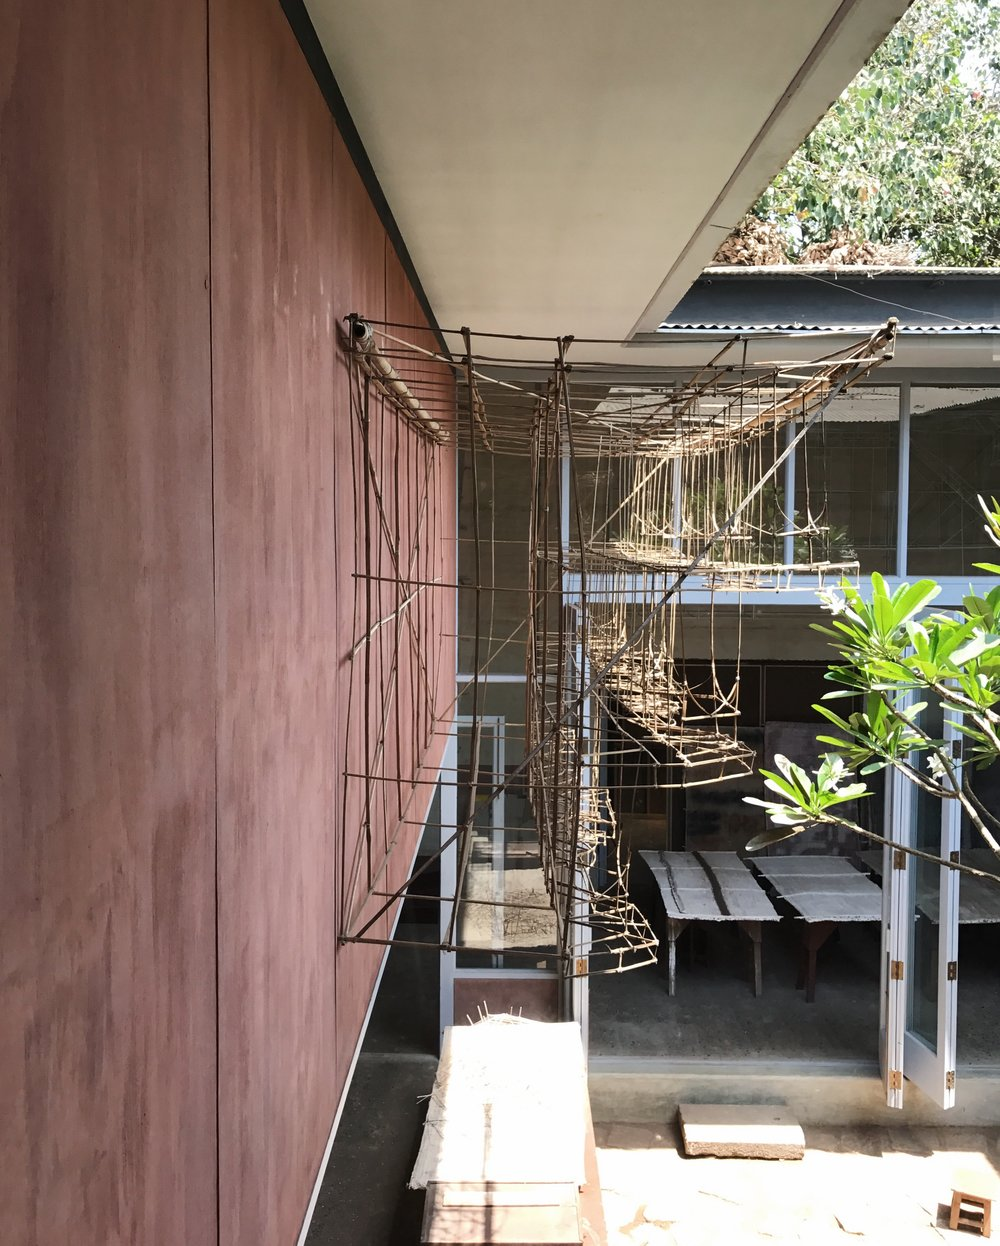 Architectural basic structures created with bamboo.